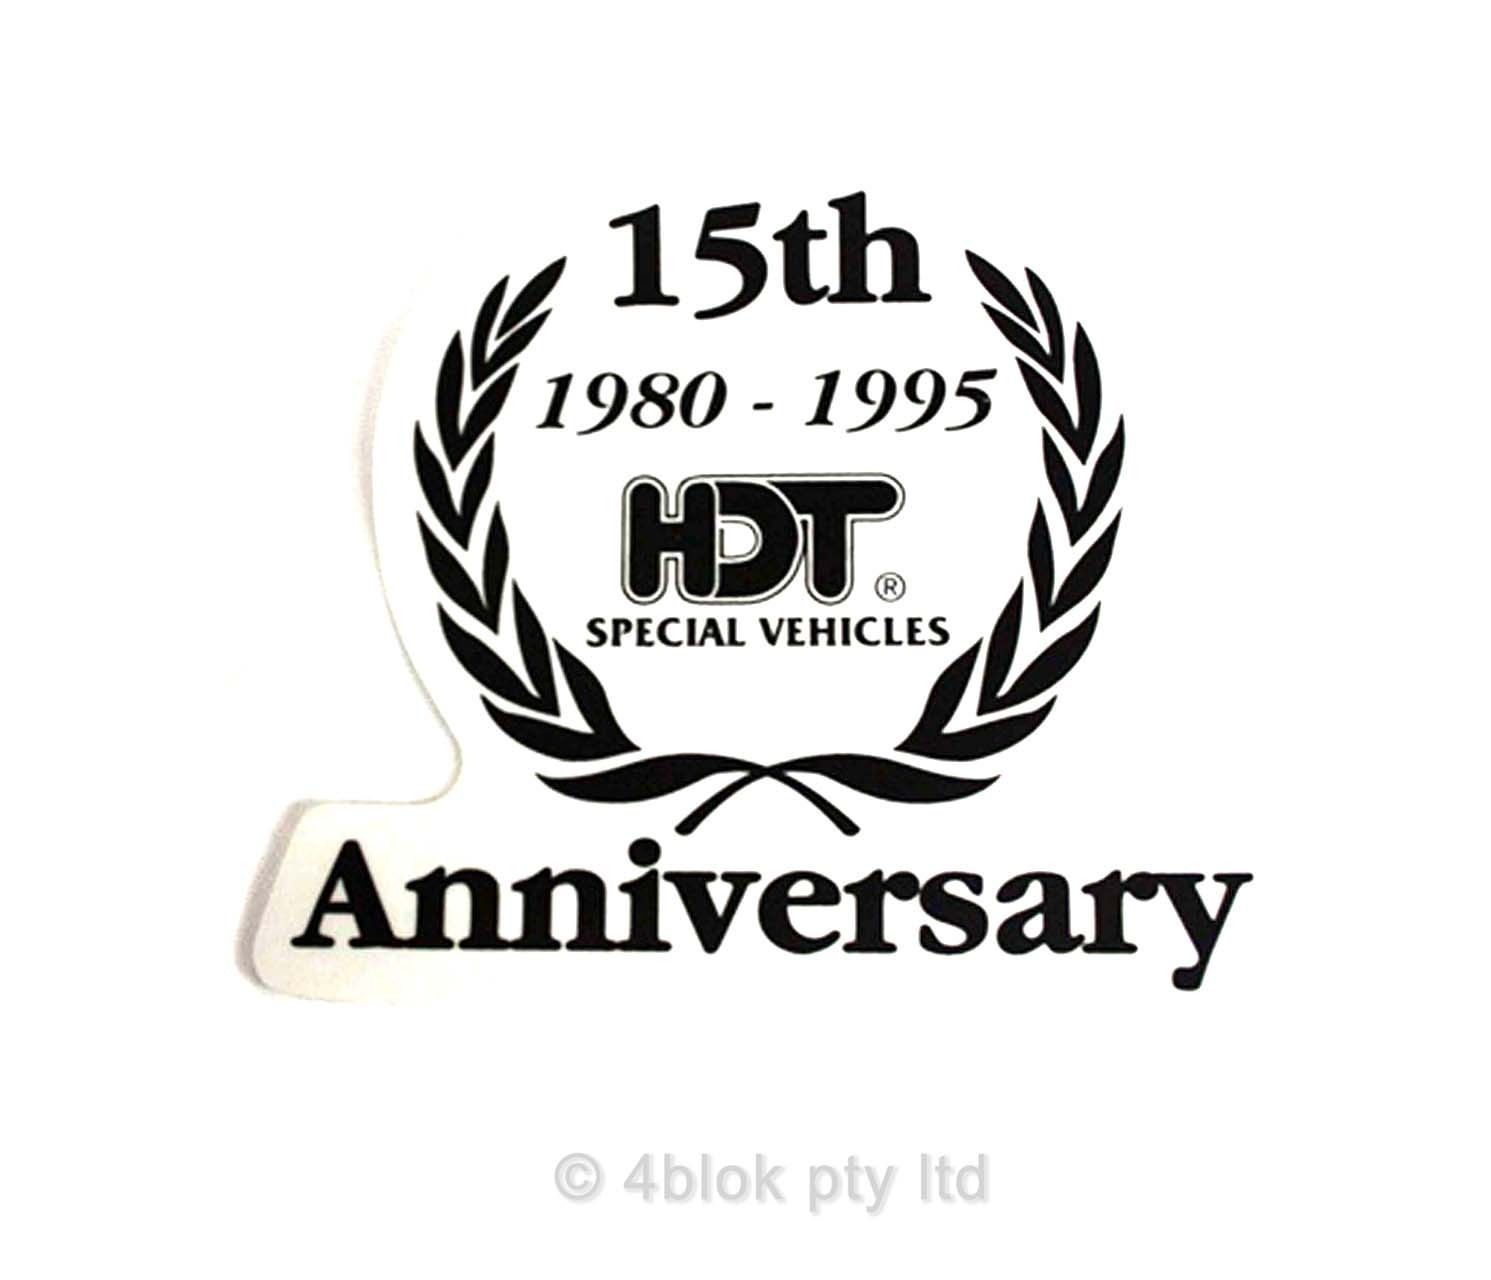 Hdt 15th Anniversary Decal